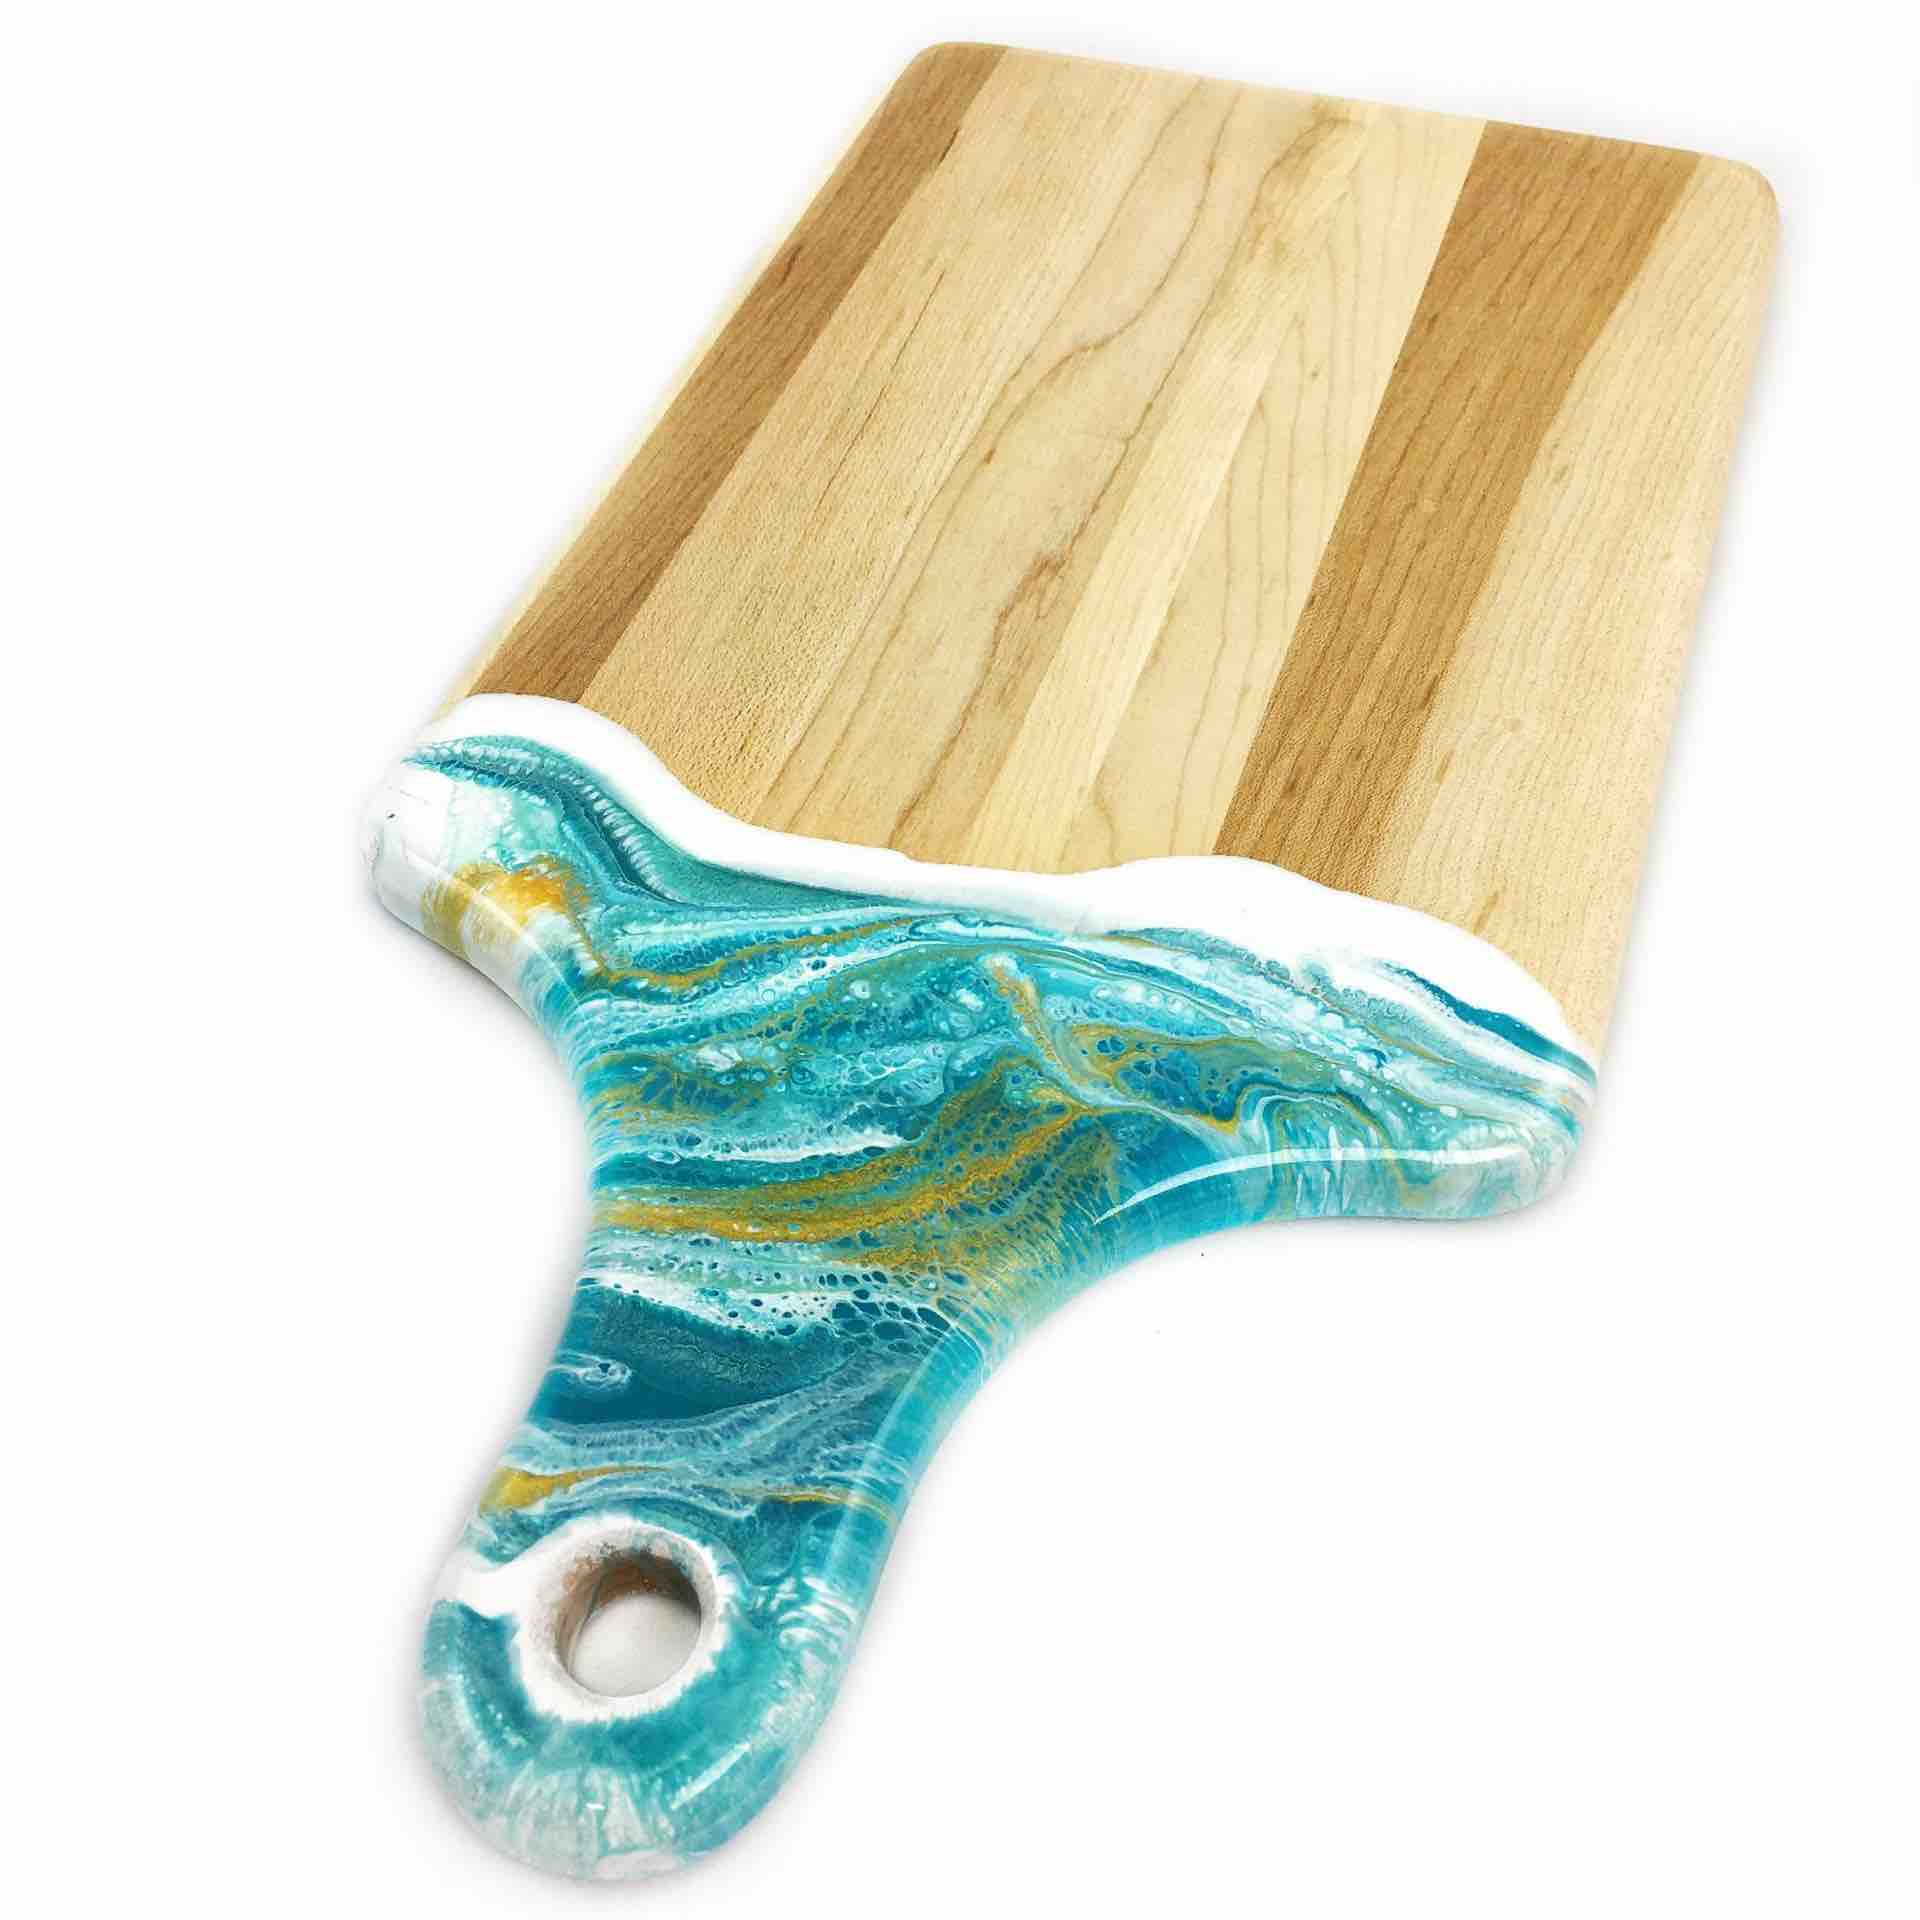 Lynn & Liana Cheeseboard with Dipped Handle | 7x14"